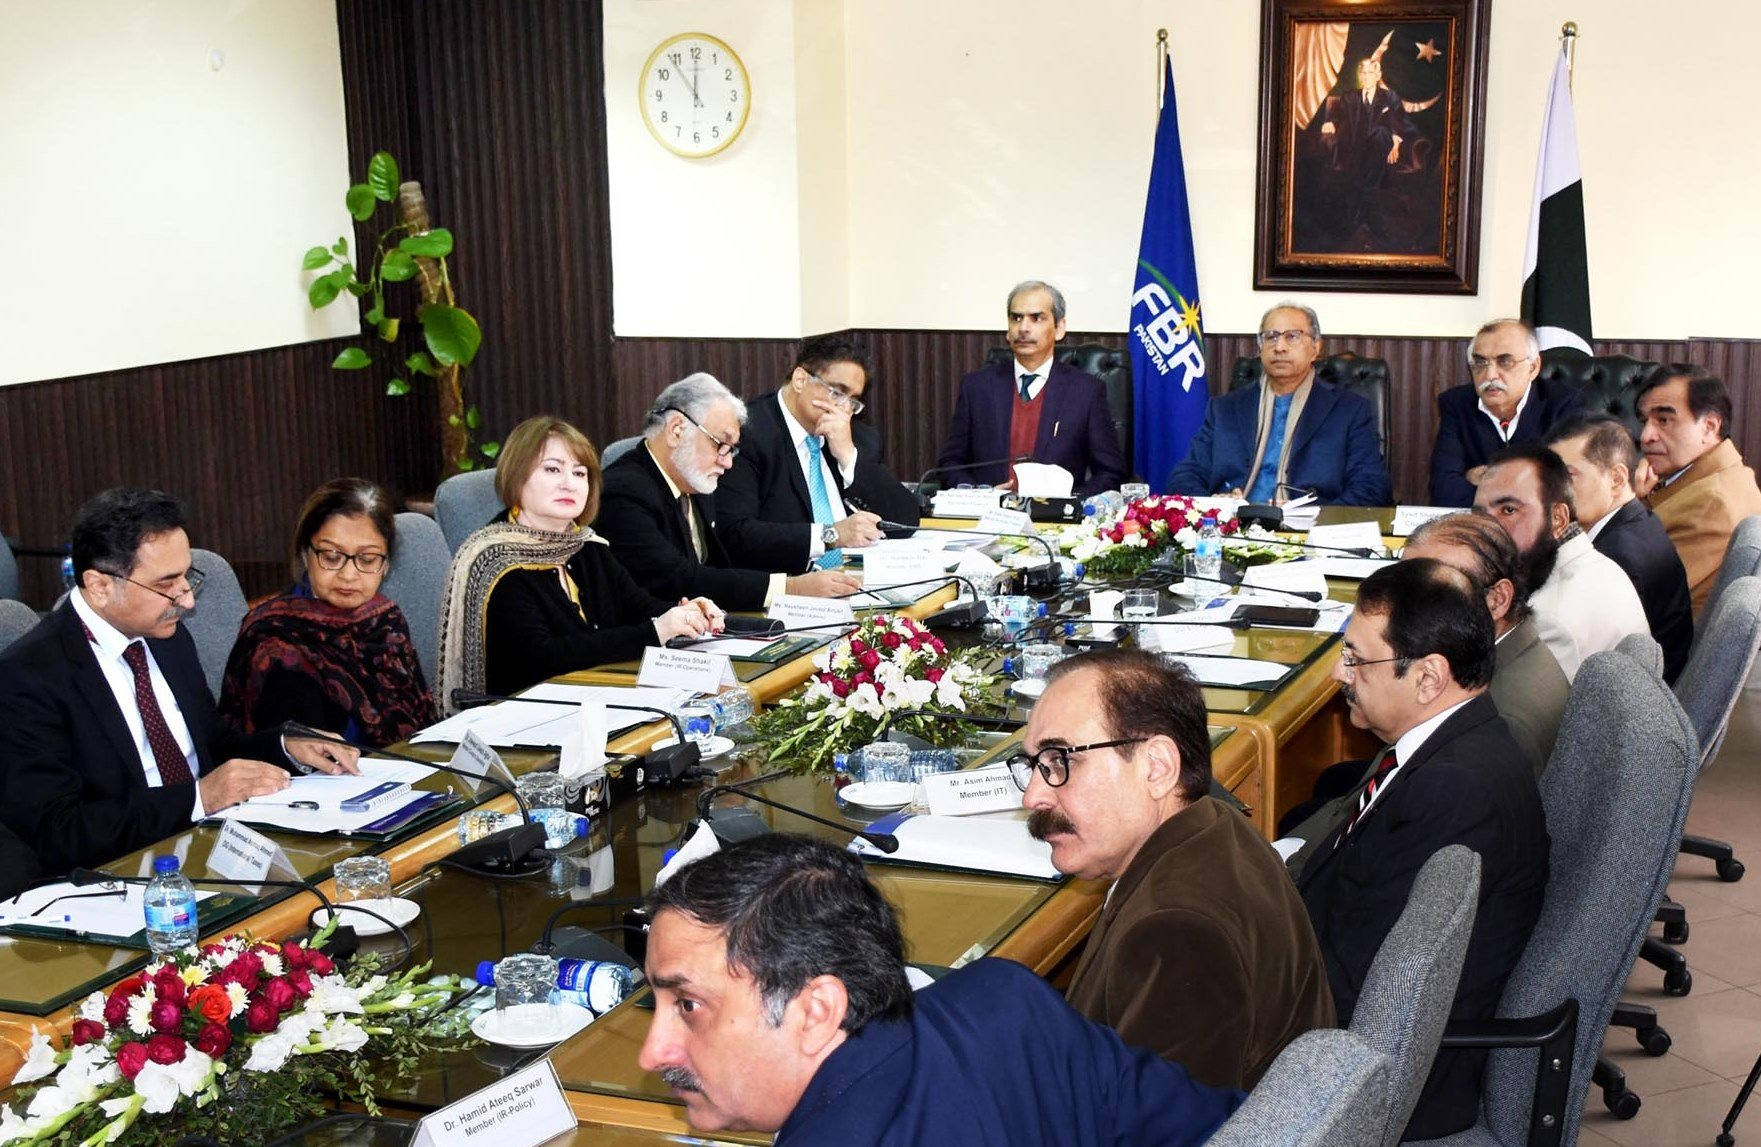 Adviser to Prime Minister on Finance and Revenue Dr Abdul Hafeez Shaikh chairing a meeting at FBR House in Islamabad to review its performance.